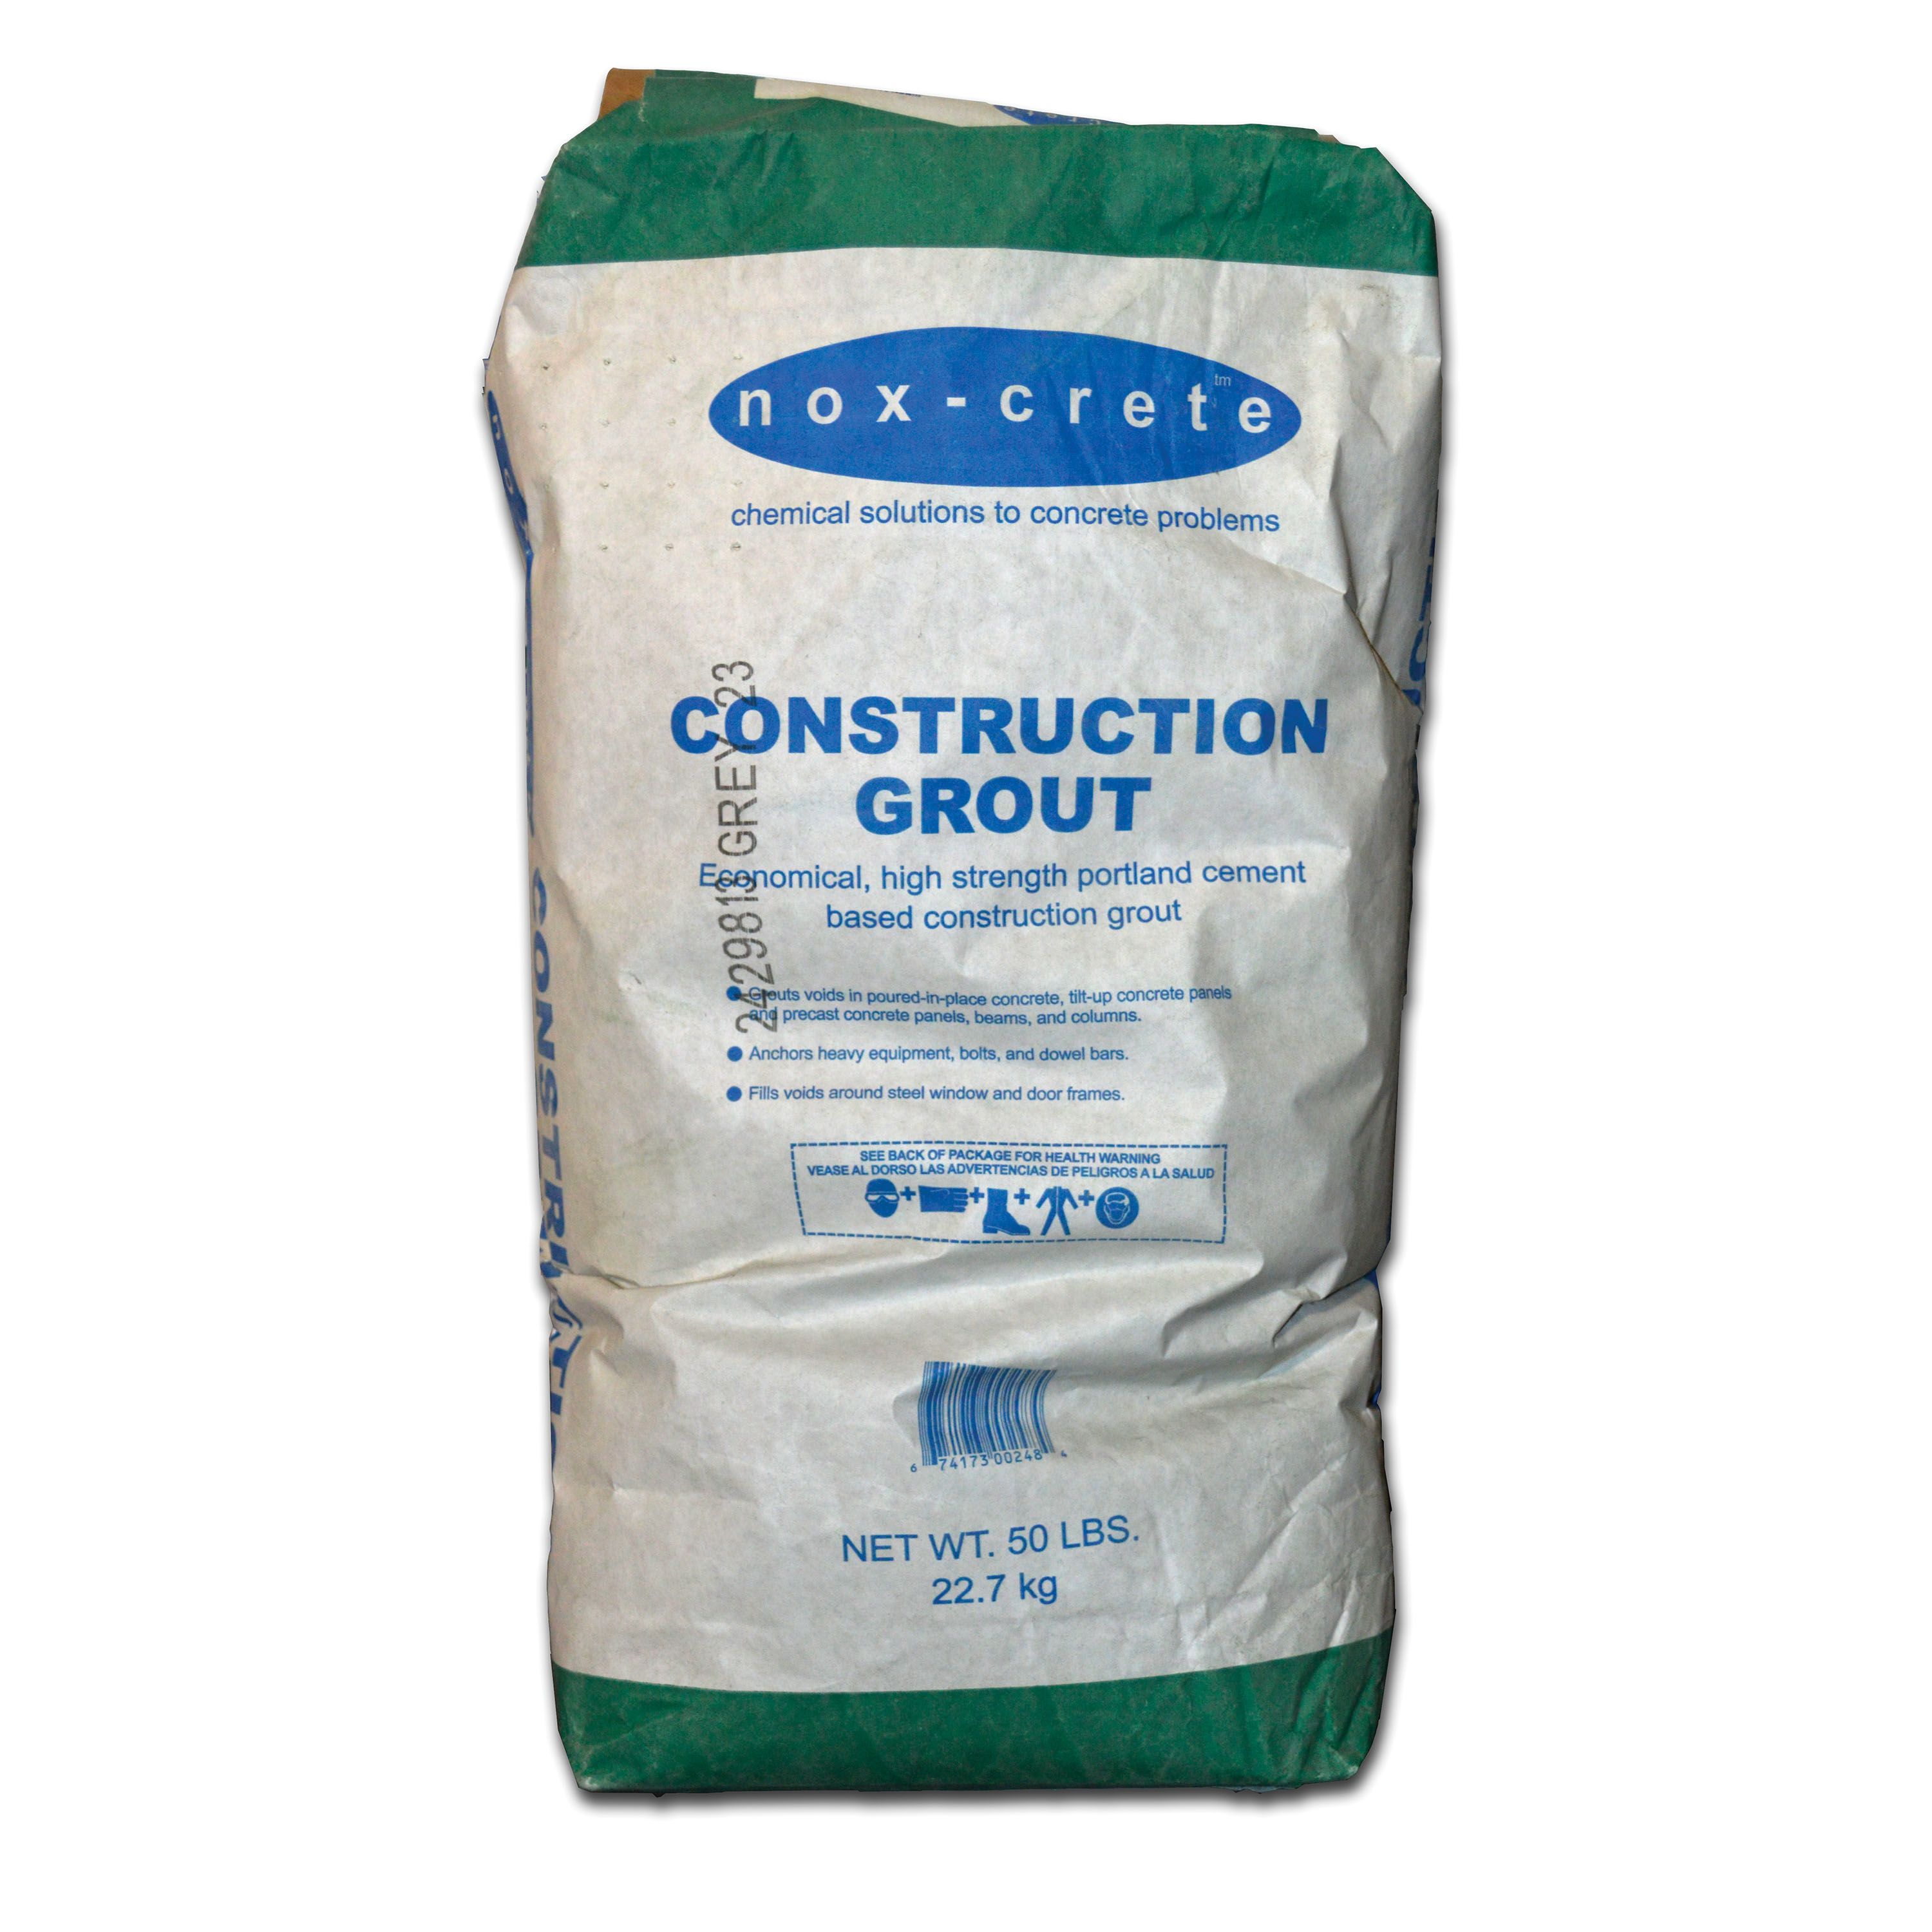 Construction Grout Nox Crete Products Group